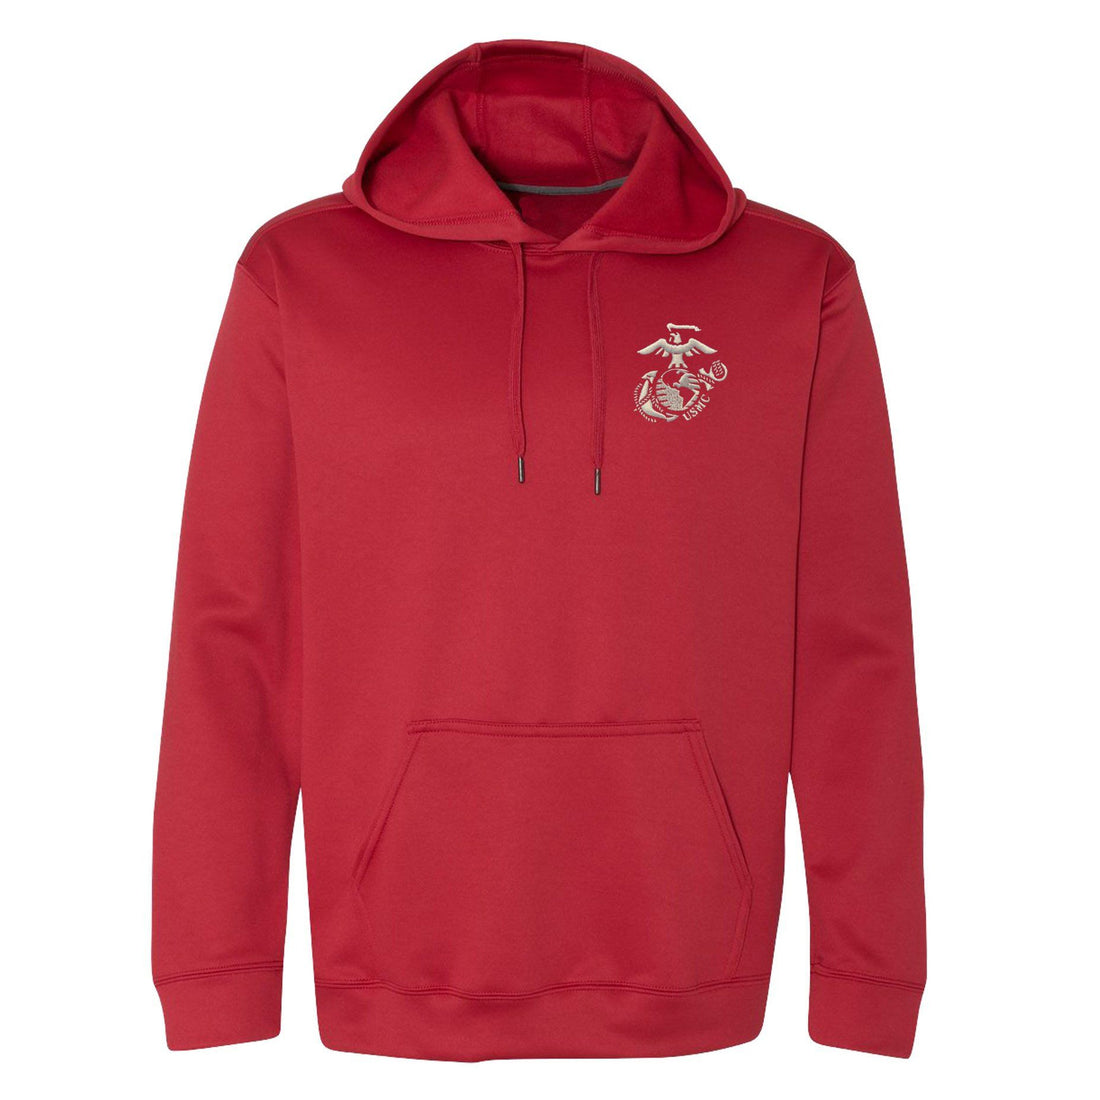 Comfortable, durable USMC sweatshirt made with 100% polyester - Marine Corps Direct